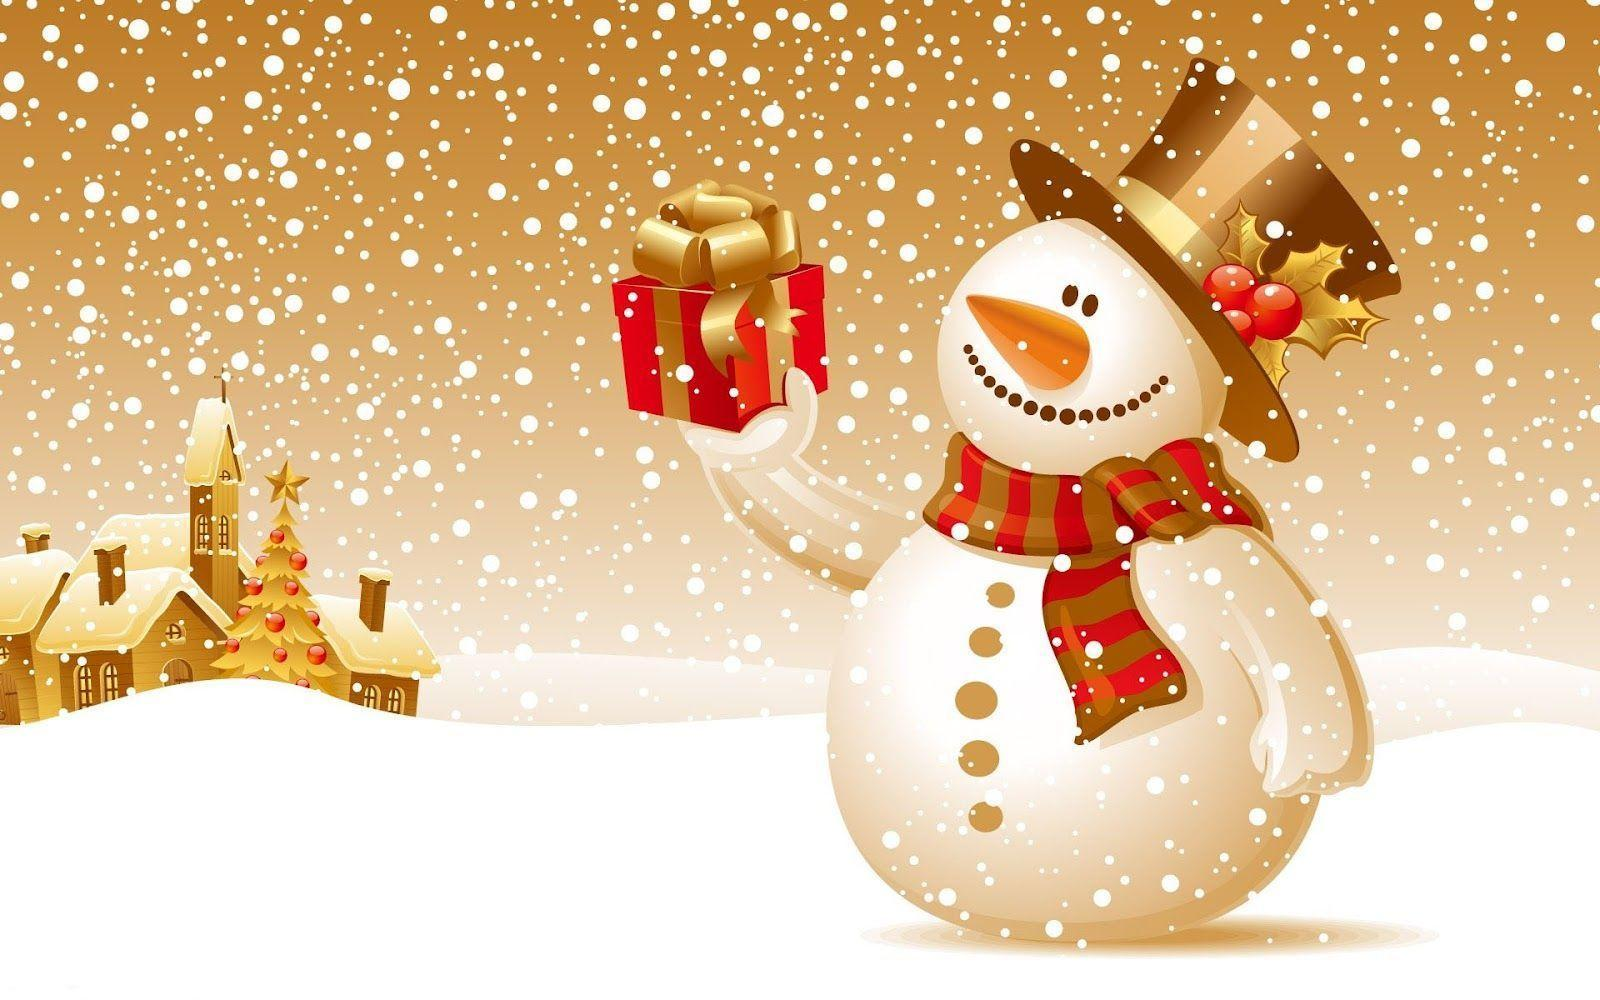 Christmas Snowman Wallpapers Top Free Christmas Snowman Backgrounds Wallpaperaccess